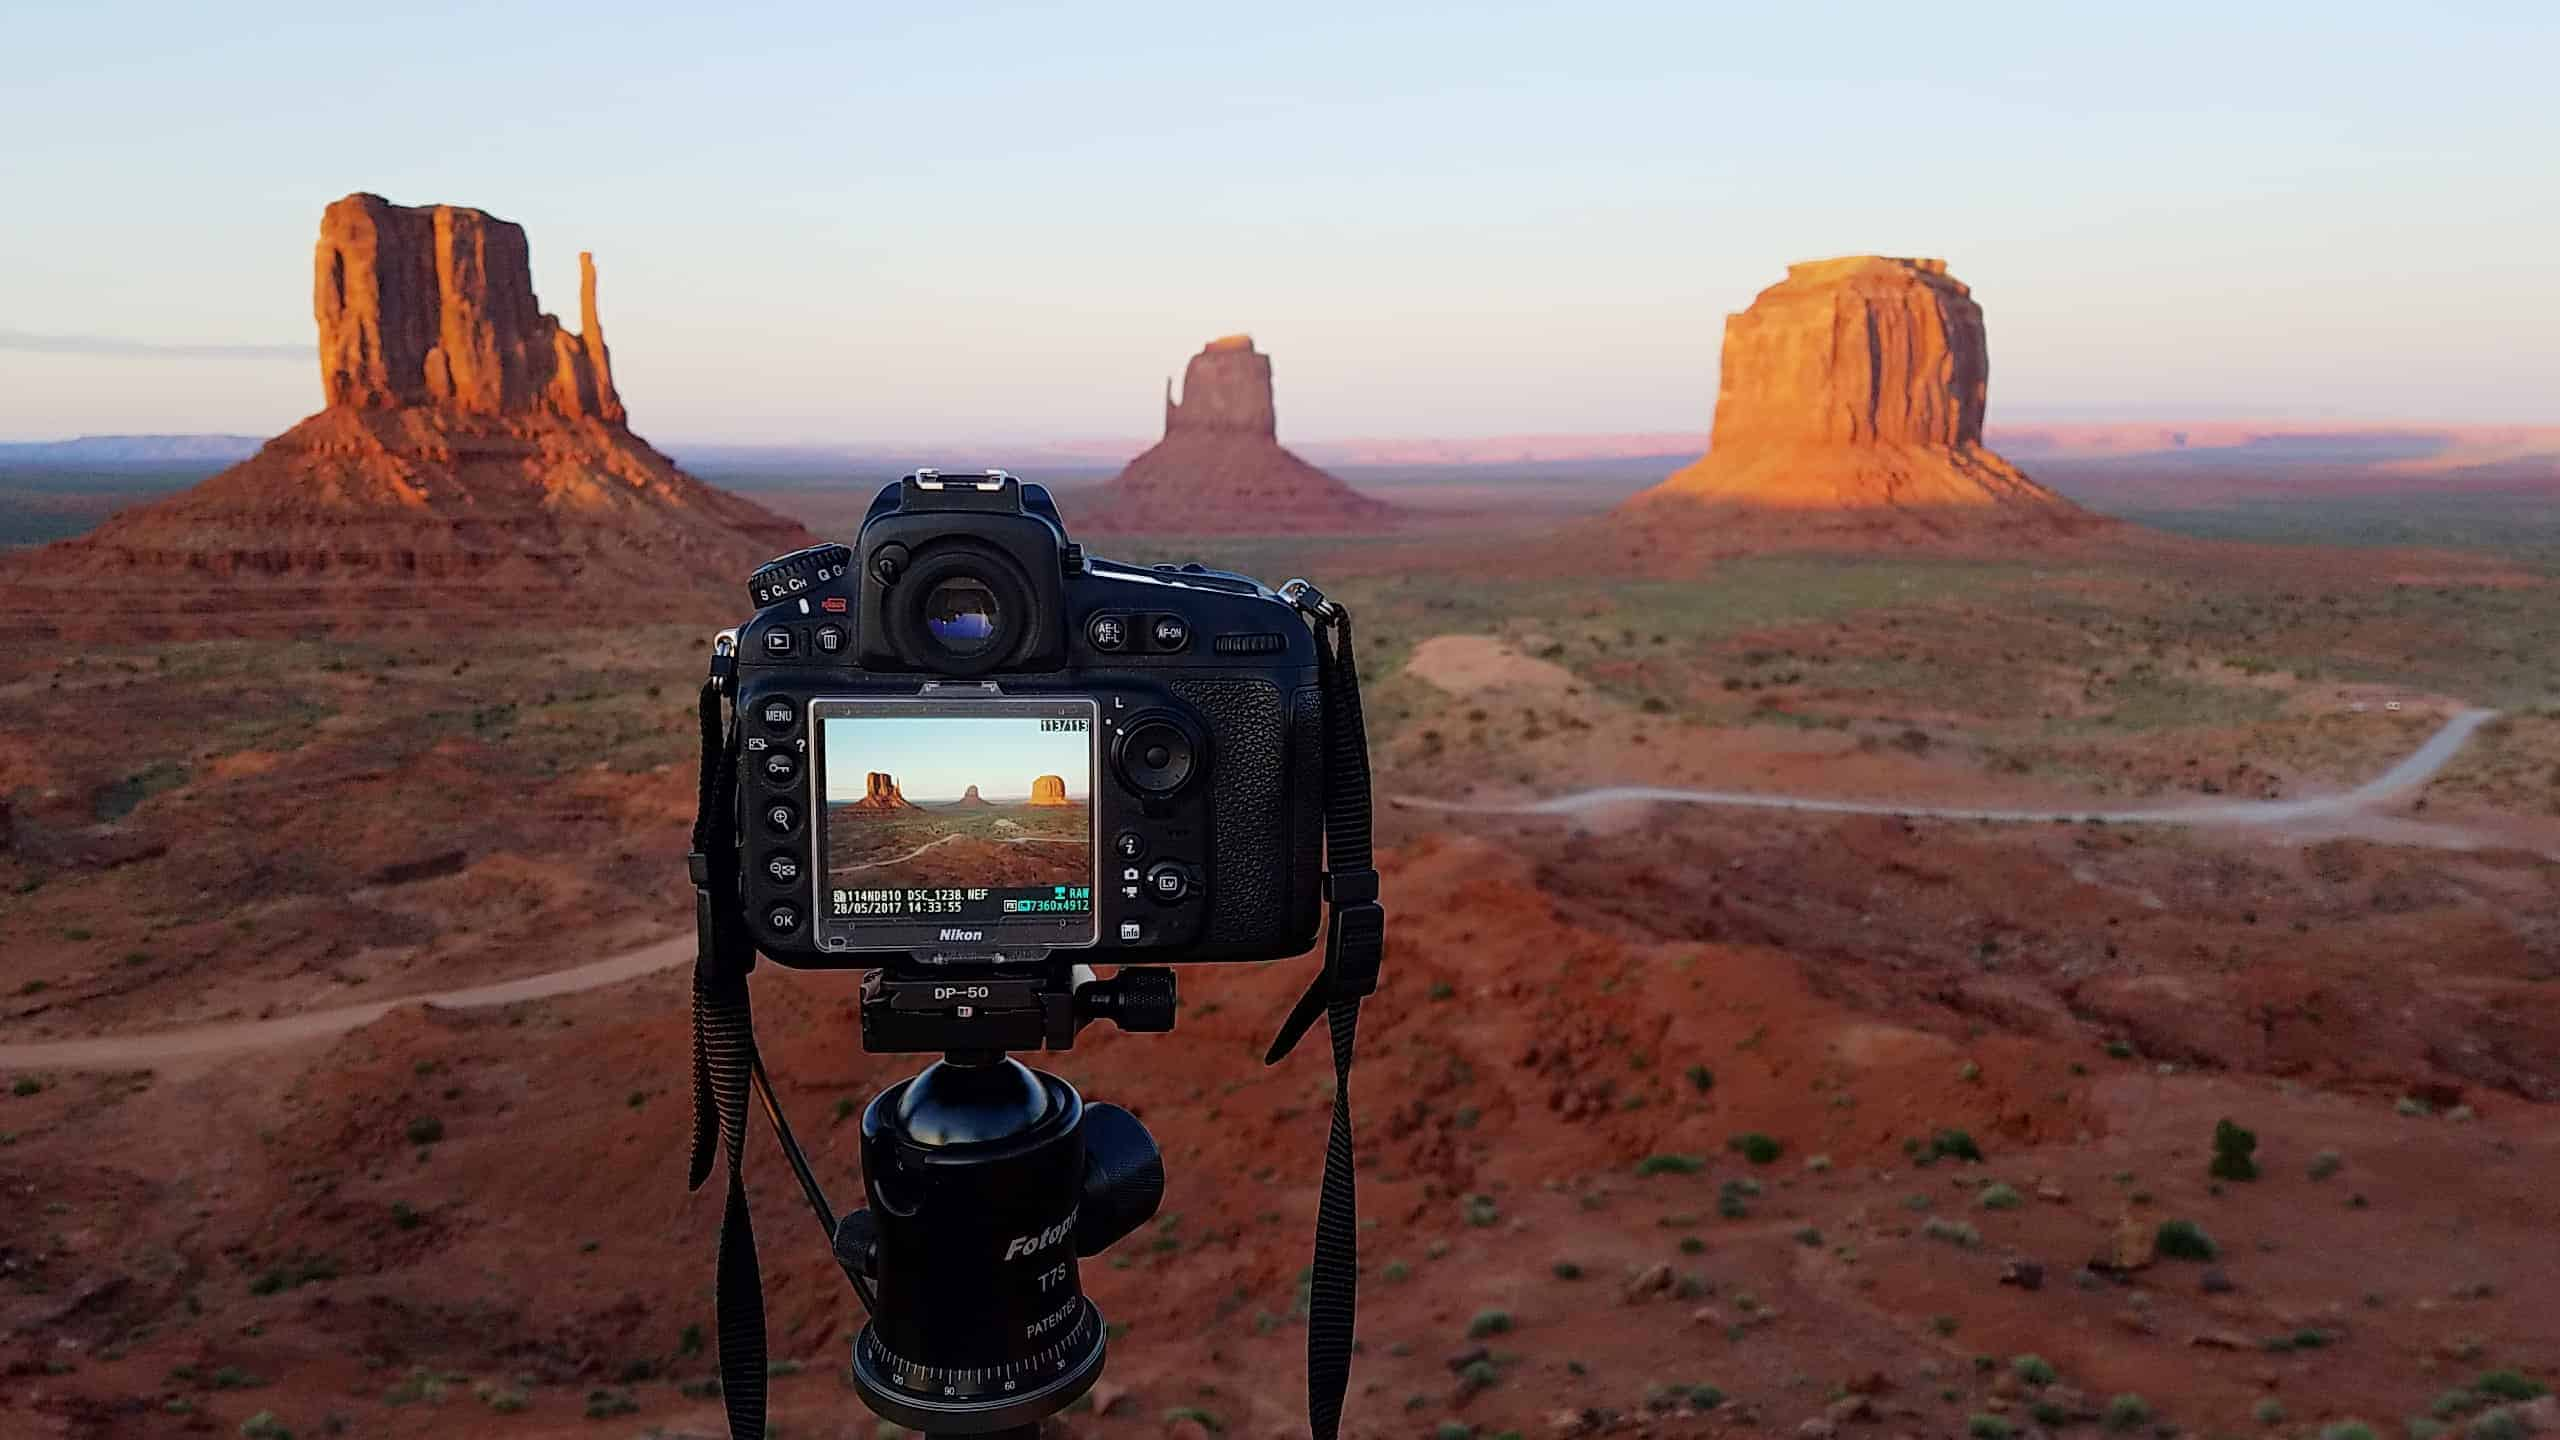 Camera on a tripod photographing Monument Valley at sunset